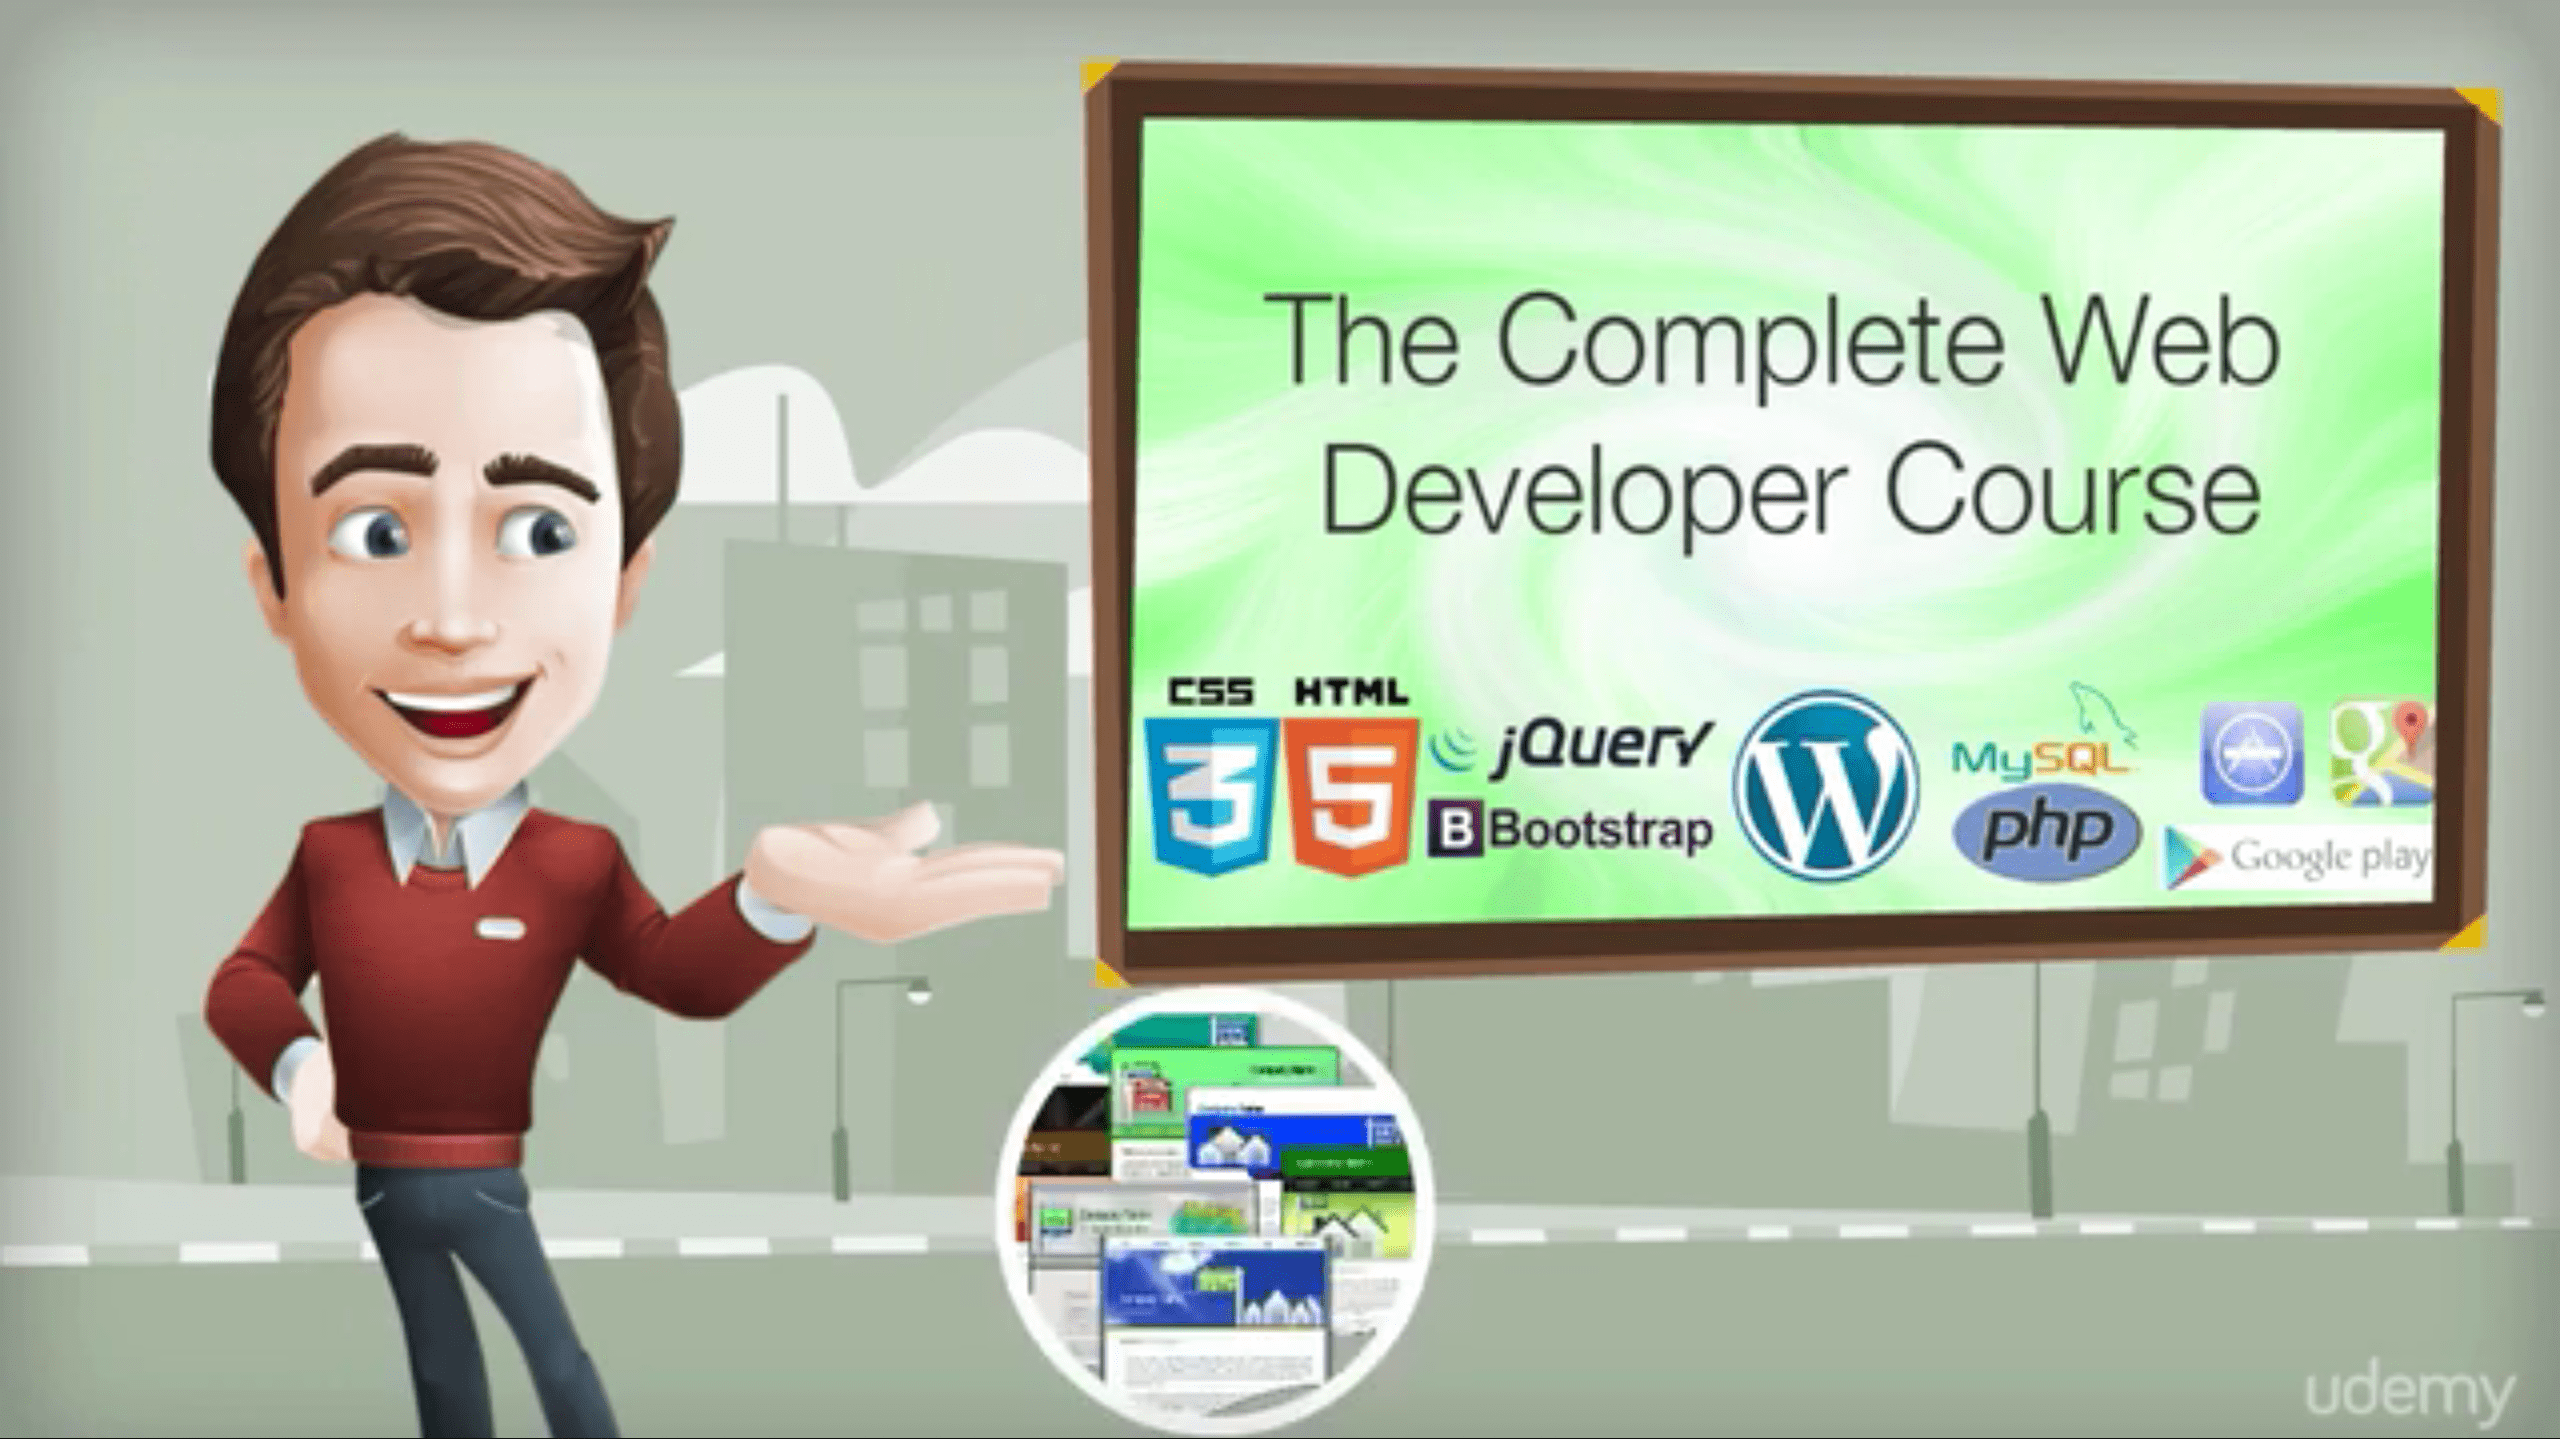 Udemy: The Complete Web Developer Course - Build 14 Websites